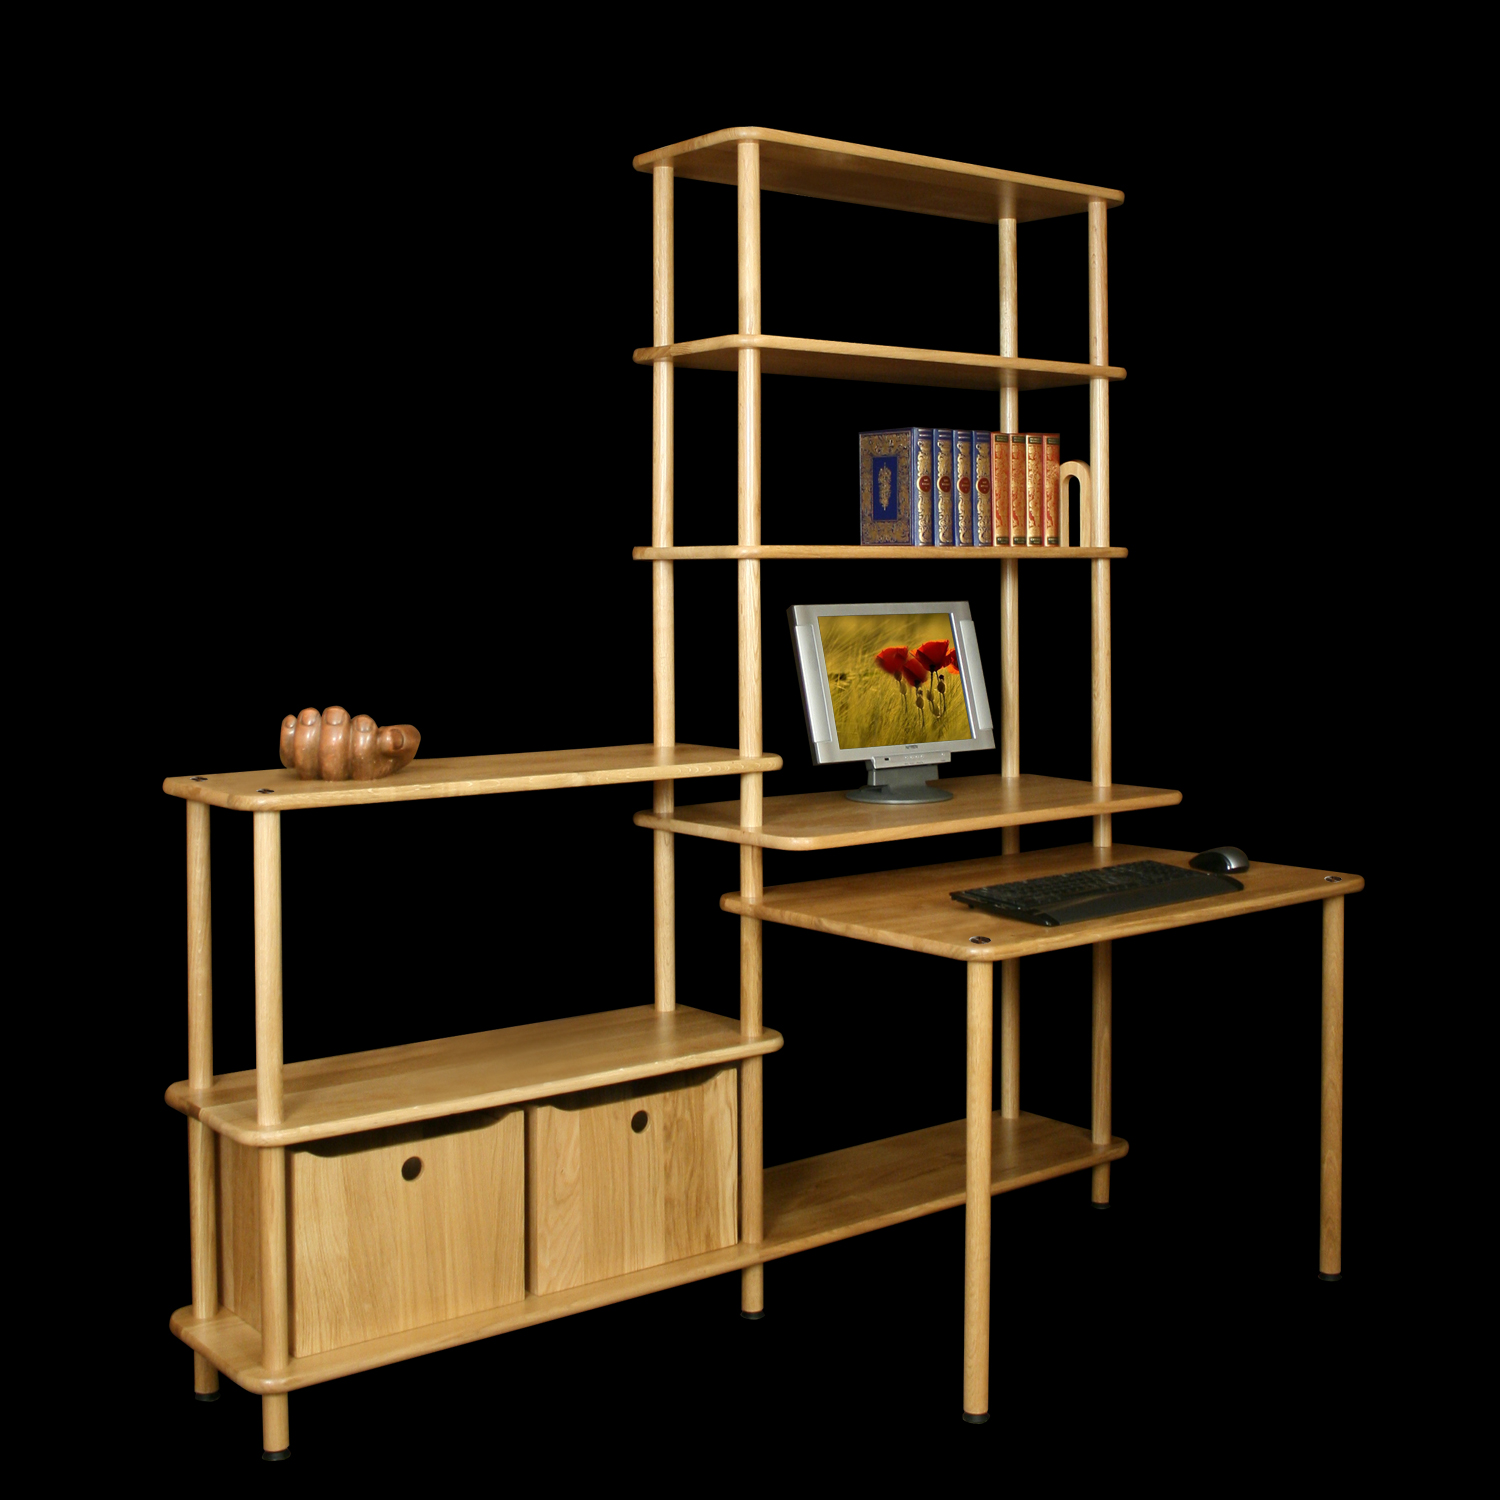 Etag re biblioth que en bois massif - Bureau bibliotheque integre ...